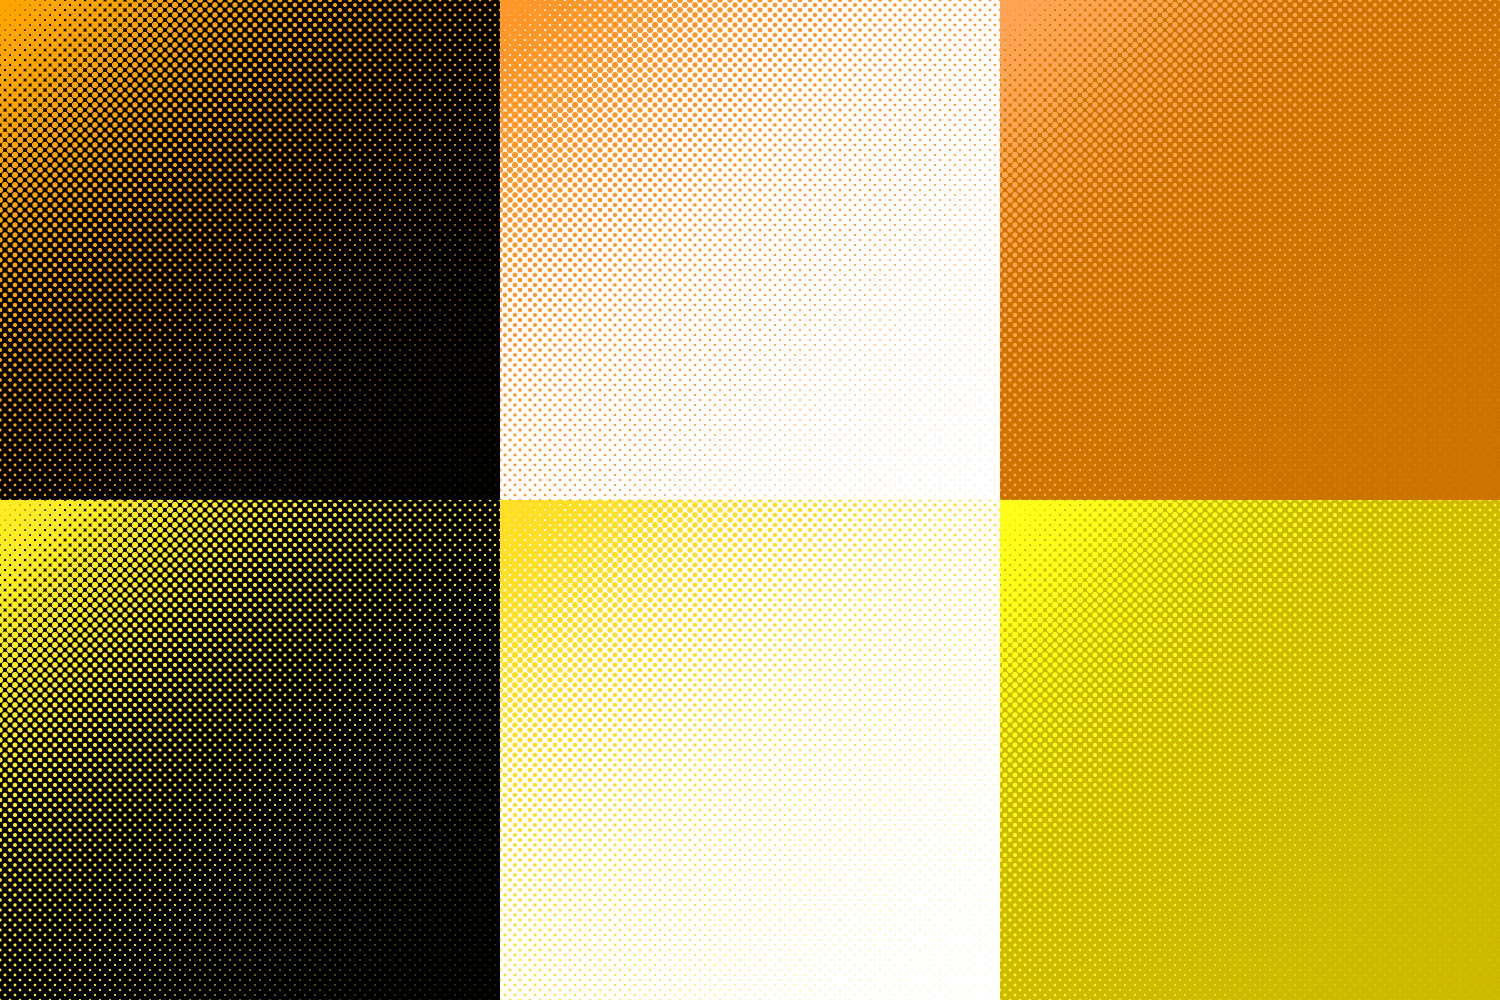 30 Halftone Circle Backgrounds (AI, EPS, JPG 5000x5000) example image 4